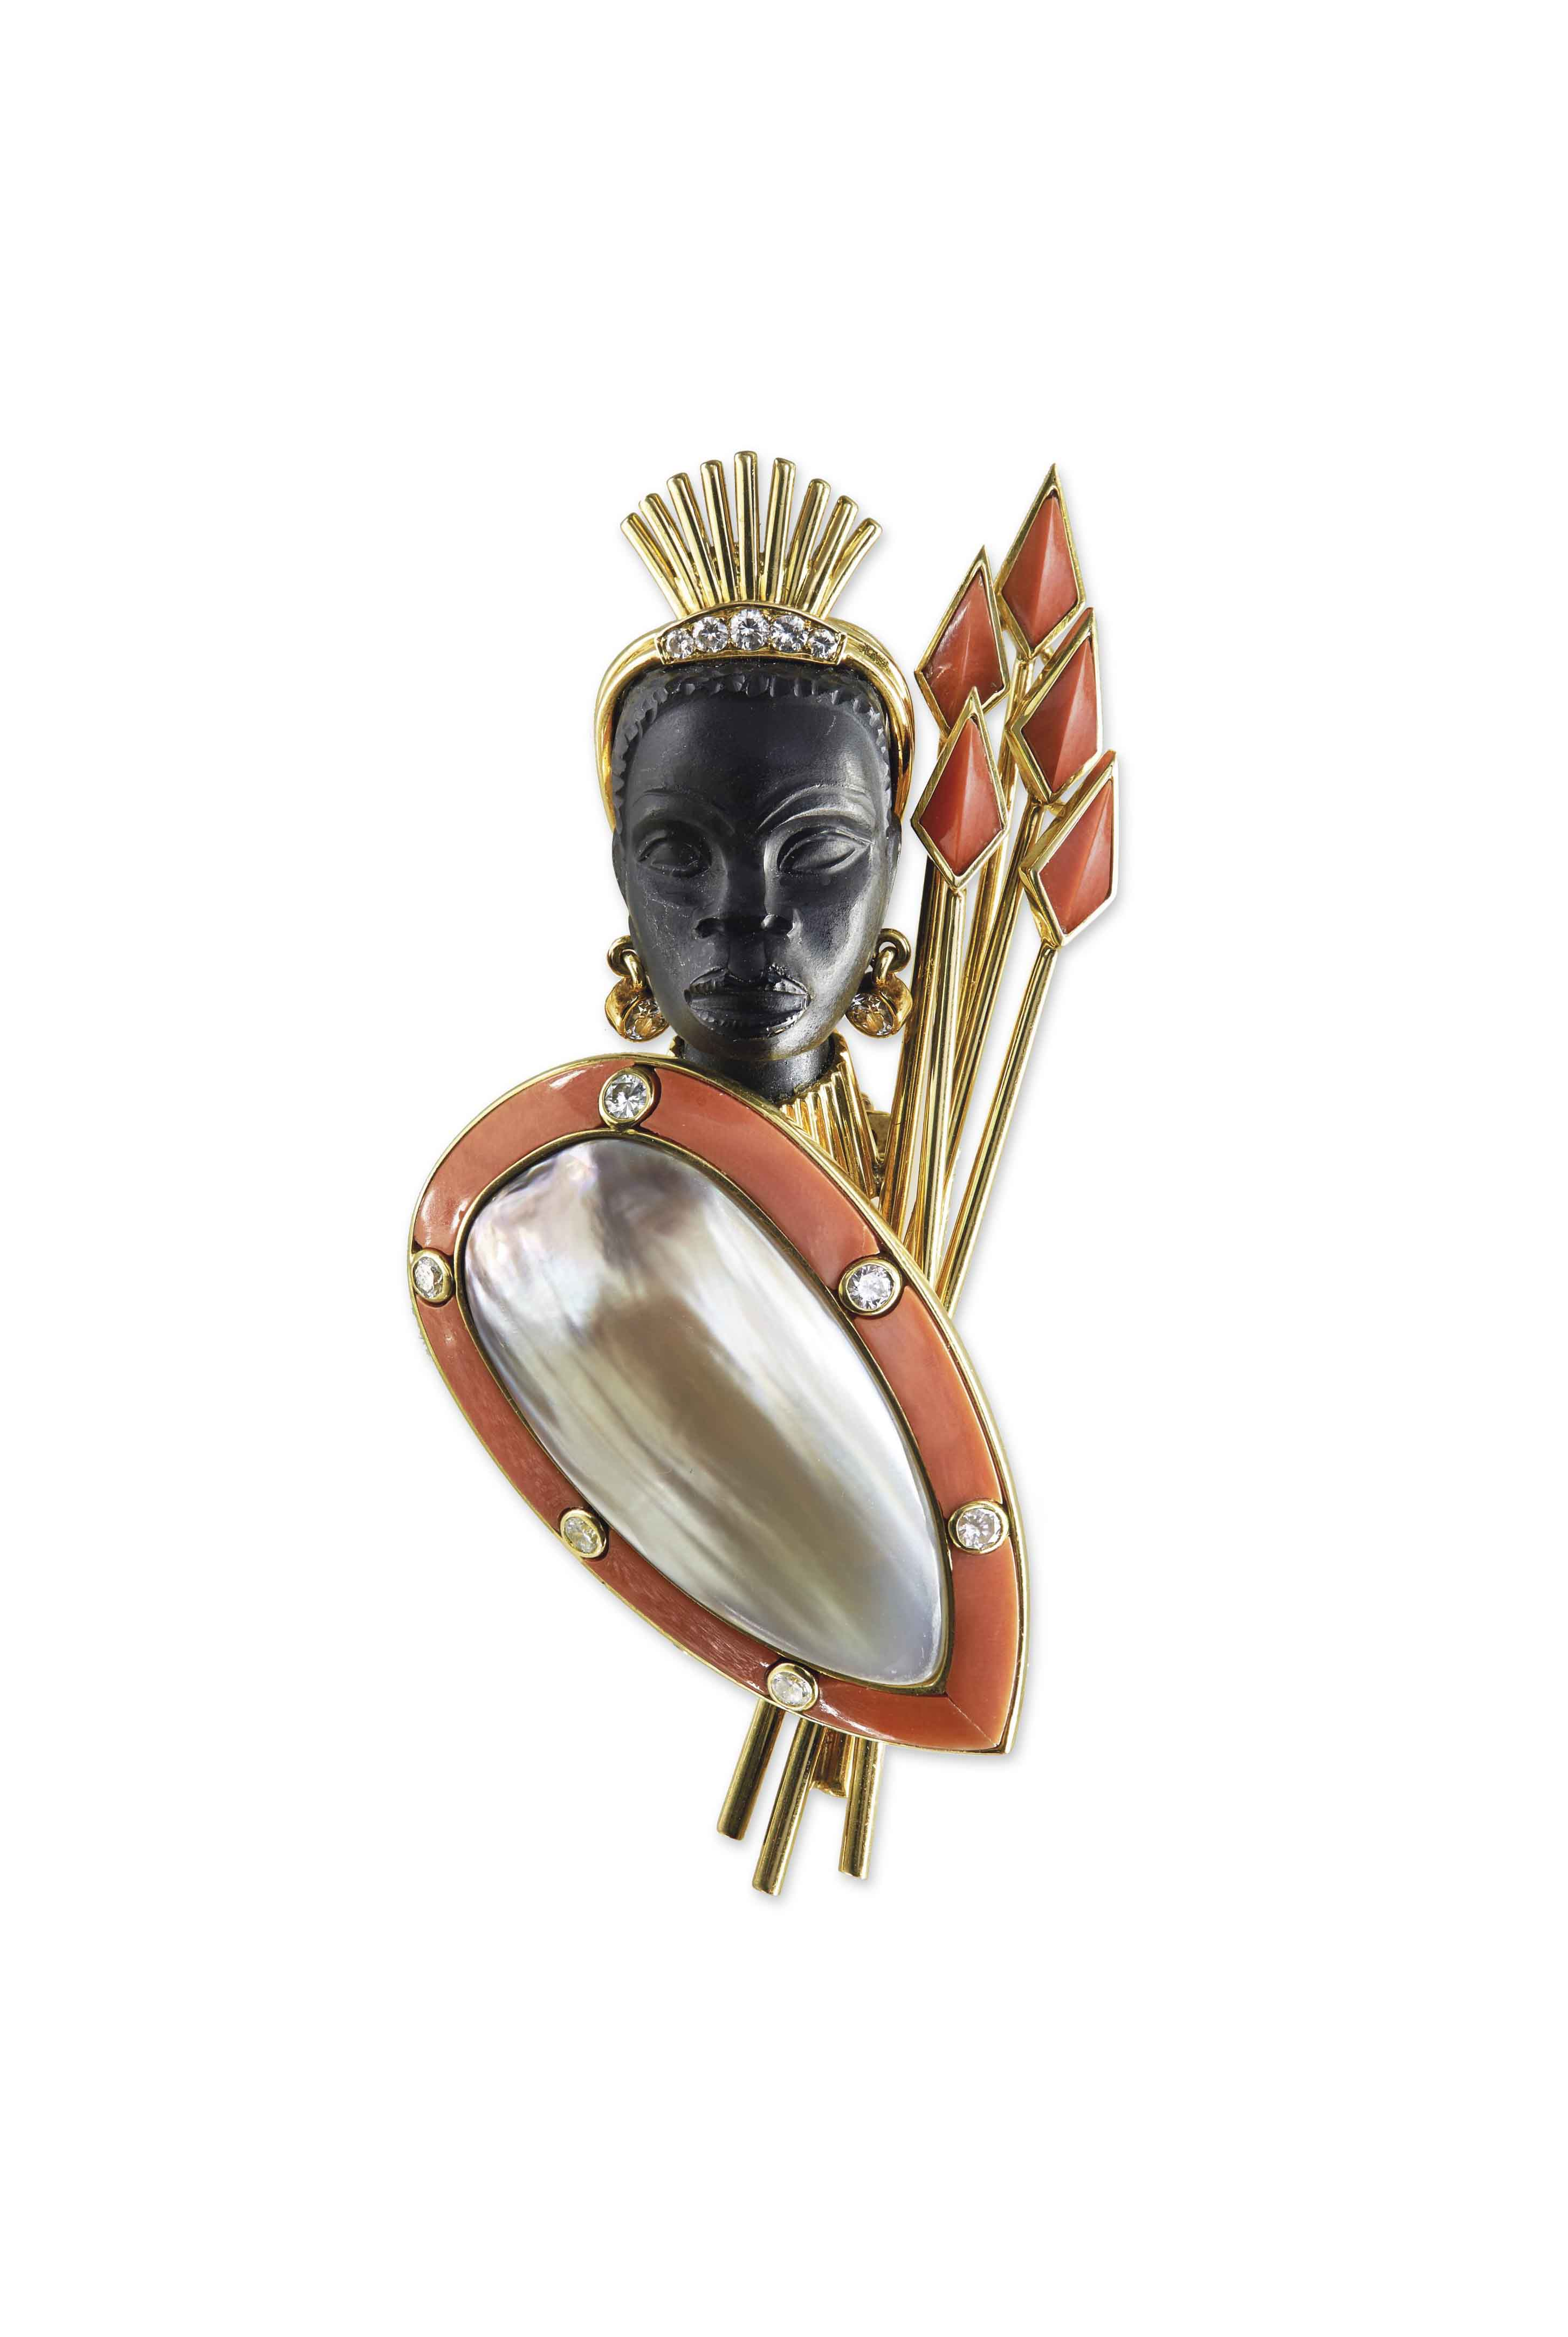 A MULTI-GEM AND BLISTER PEARL 'MAASAI' BROOCH, BY CARTIER